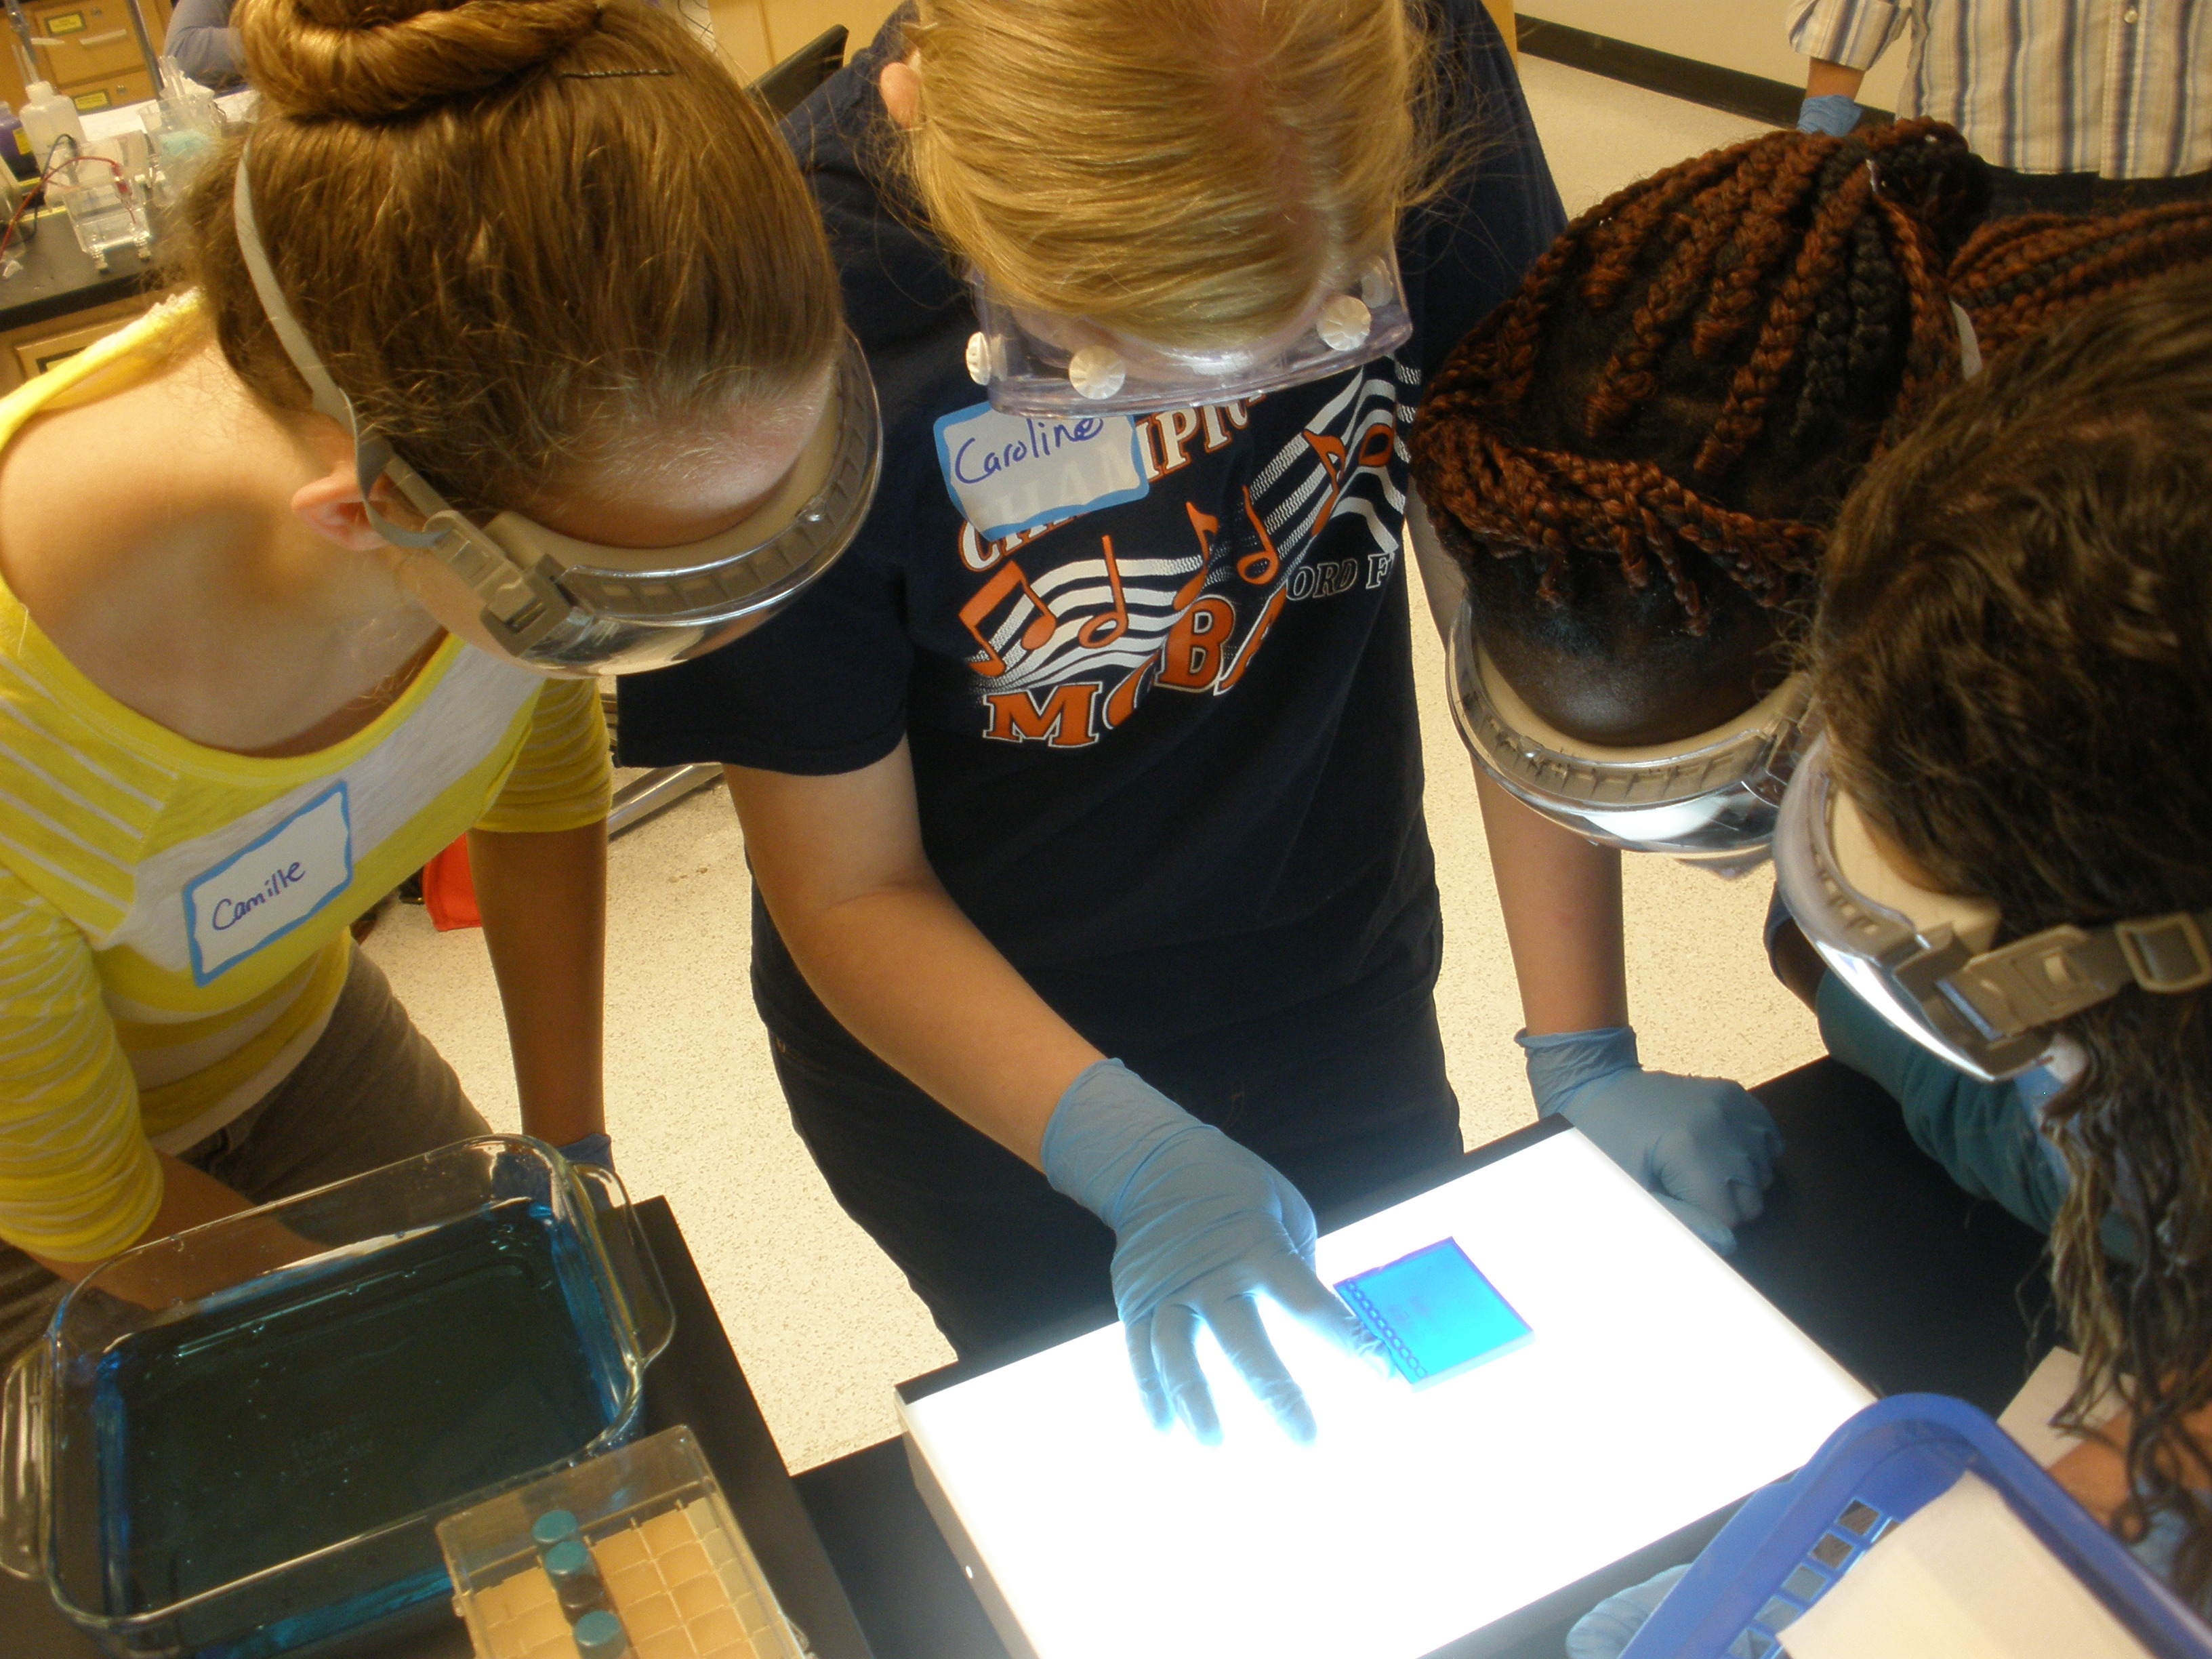 Students standing over an electrophoresis test, studying fingerprint results